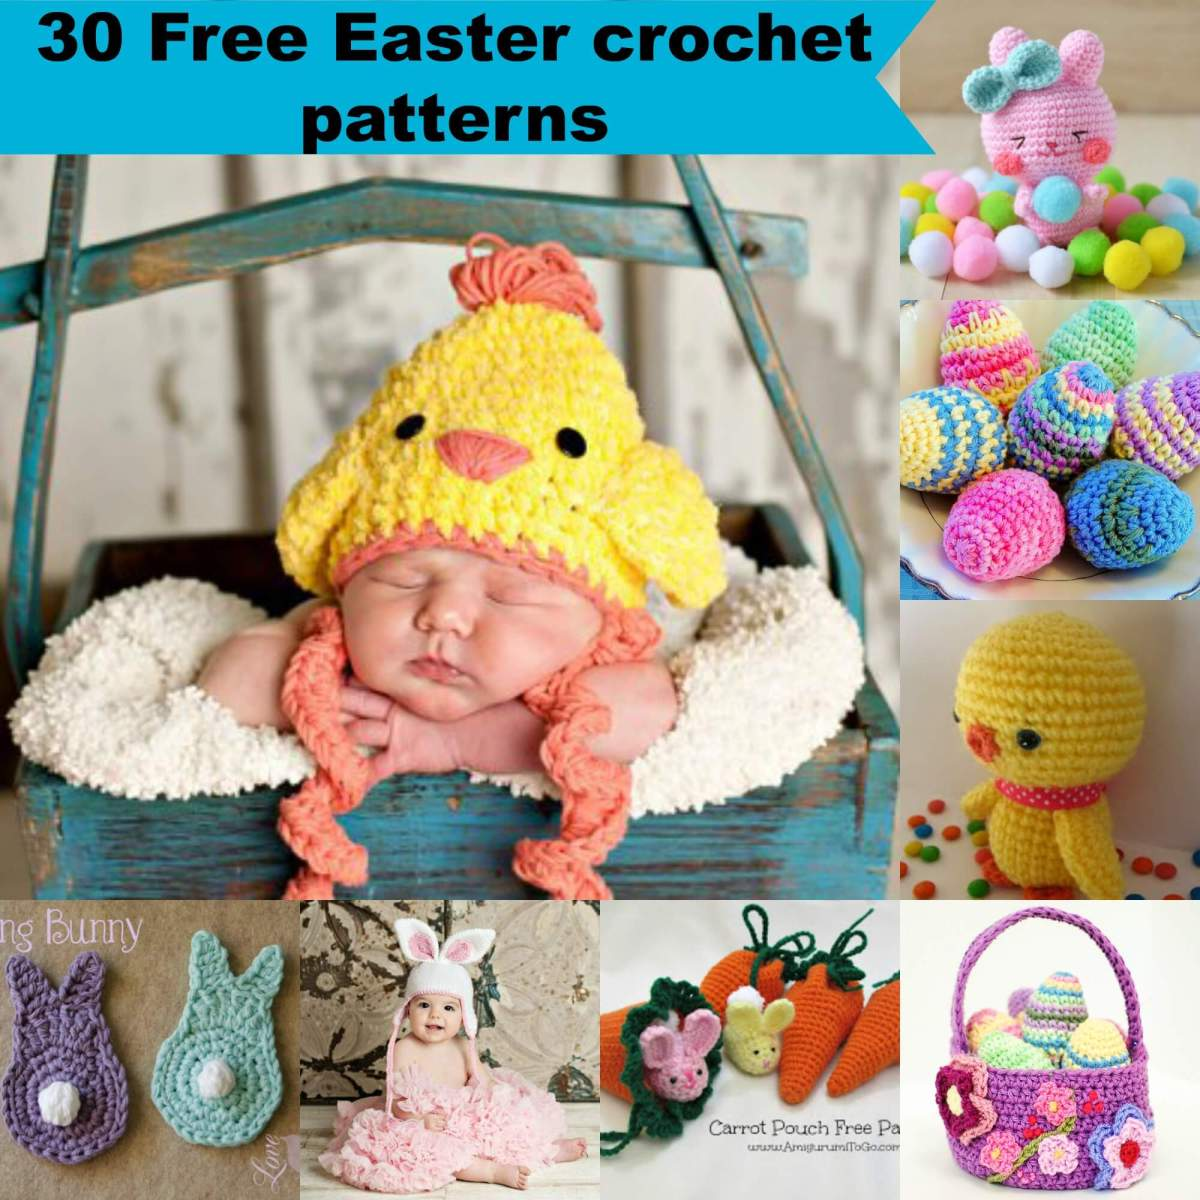 30 free easy Easter crochet patterns